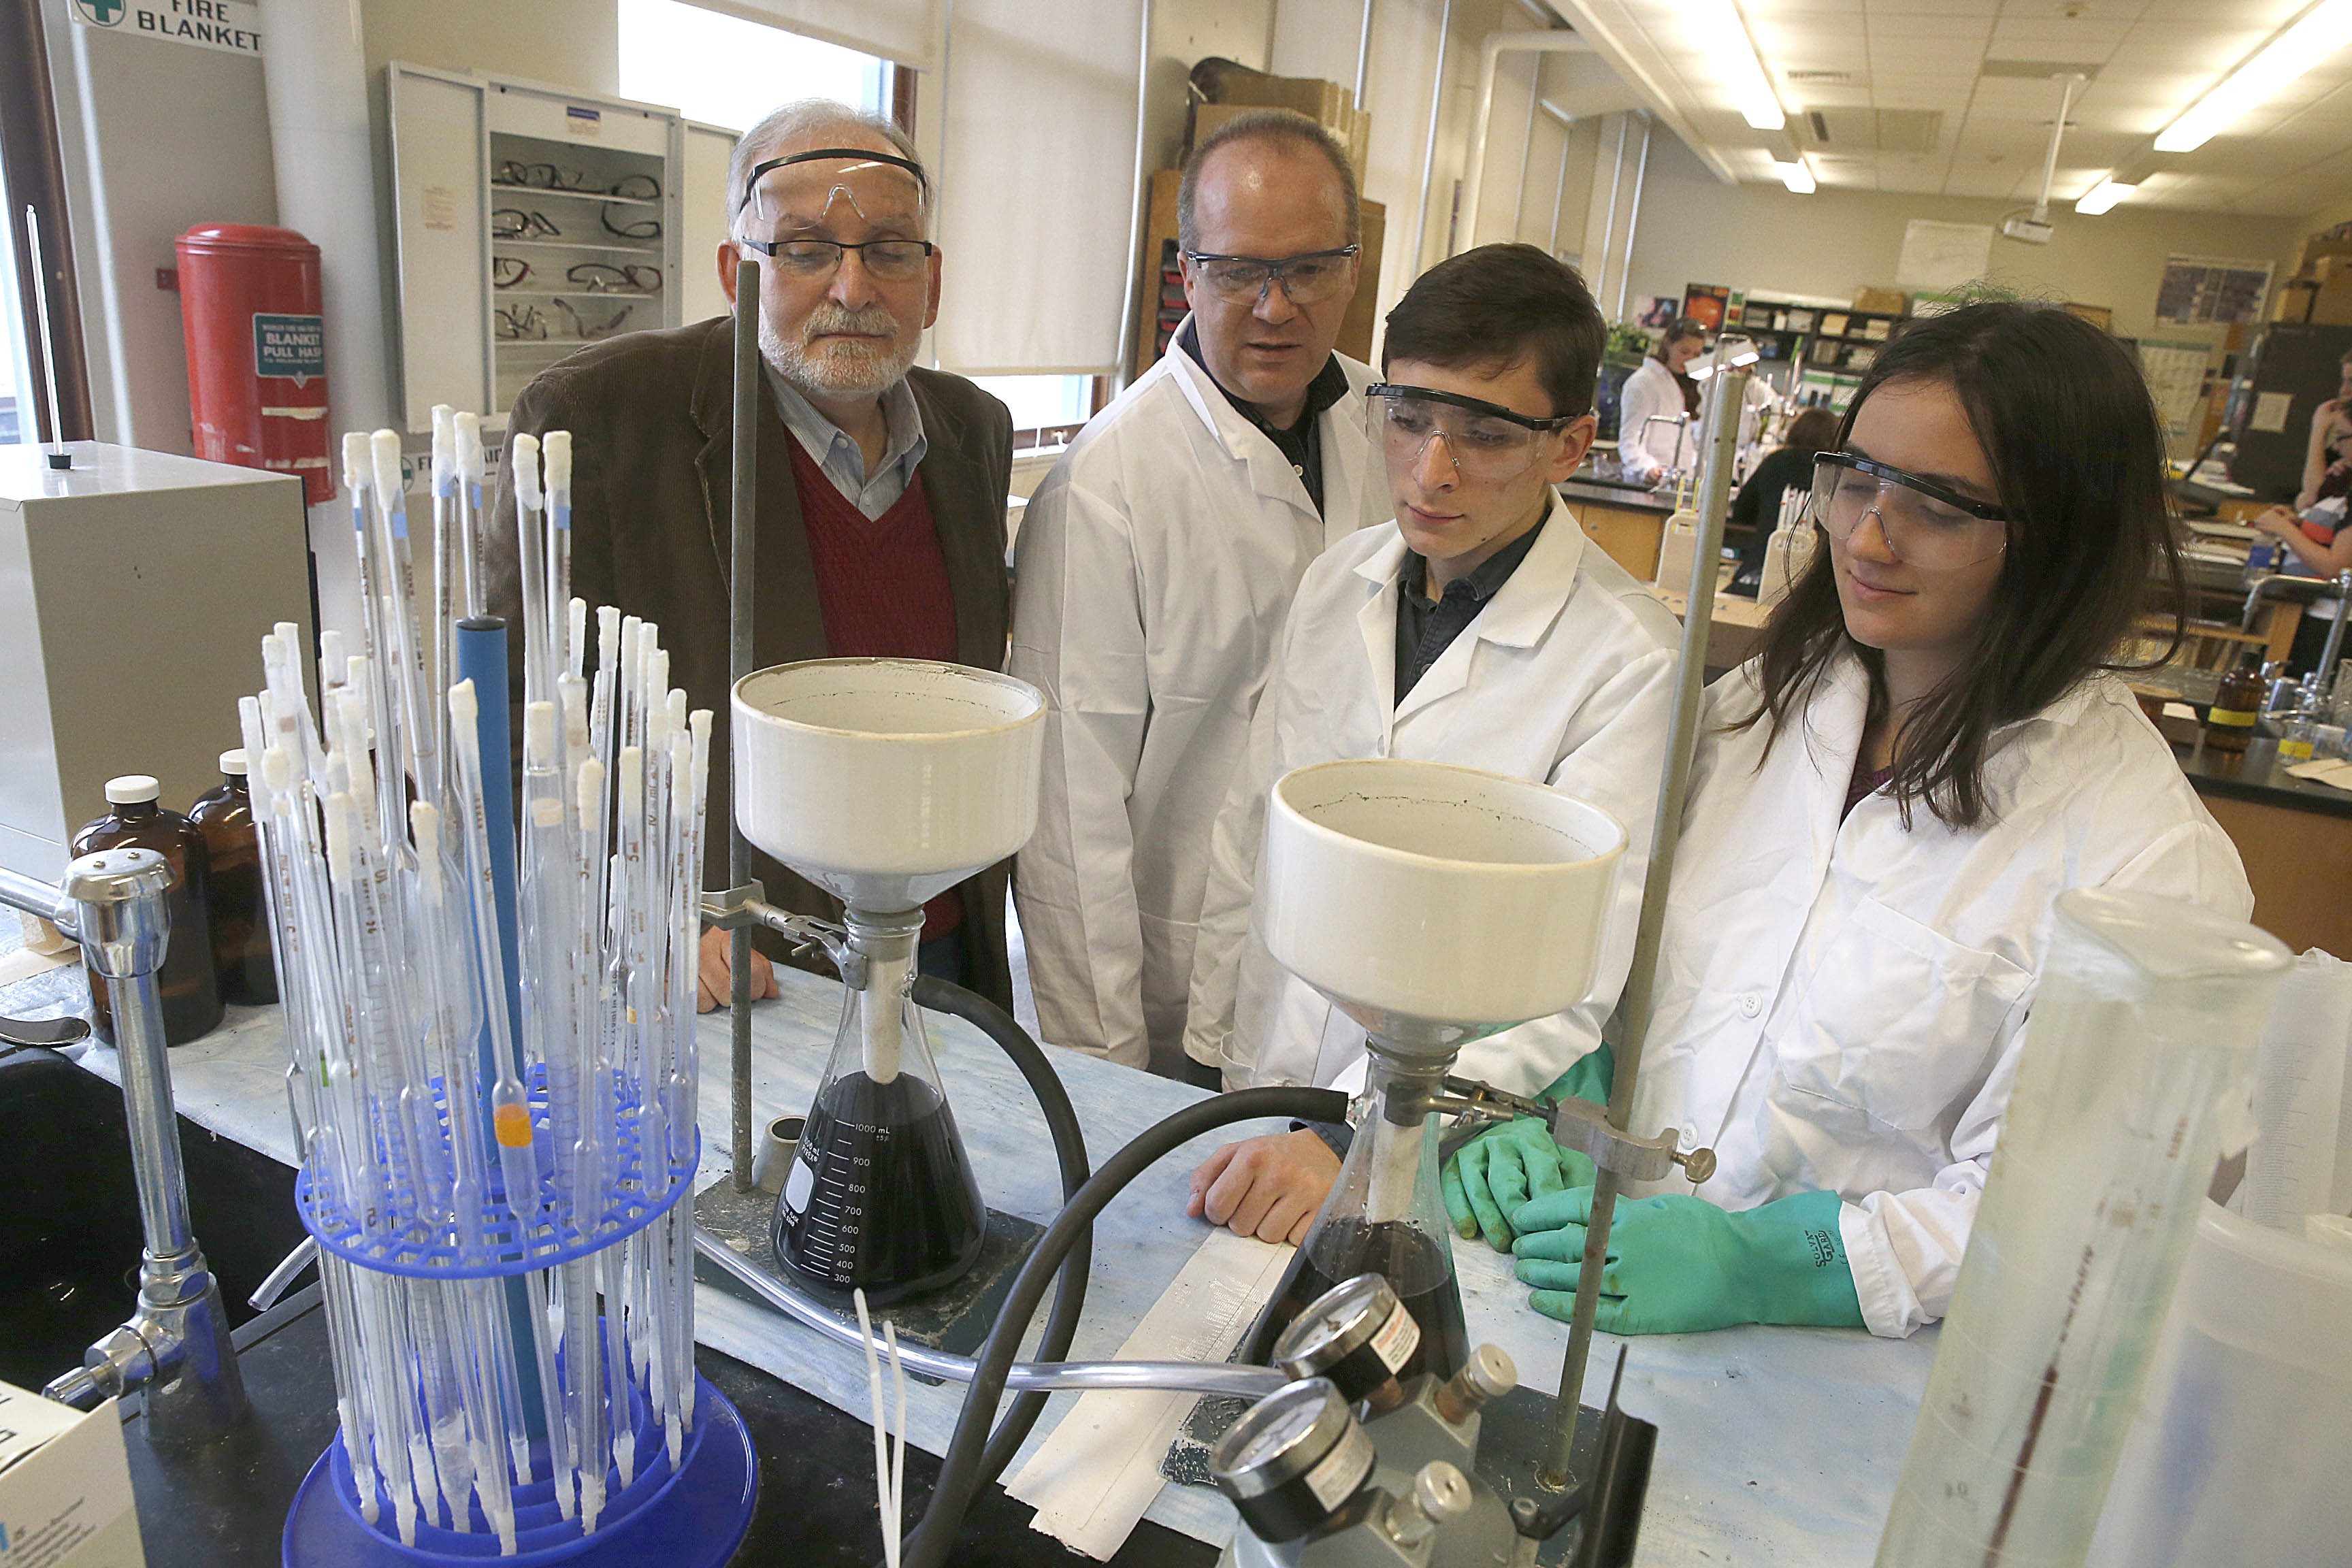 From left, UB Professor Joseph Gardella, who has spearheaded the Interdisciplinary Science and Engineering Partnership chemistry teacher Daniel Hildreth, and students Ryne McCarthy and Maggie Zaifer examine the progress of a Graphene Oxide experiment at South Park High School last December. (Robert Kirkham/Buffalo News)